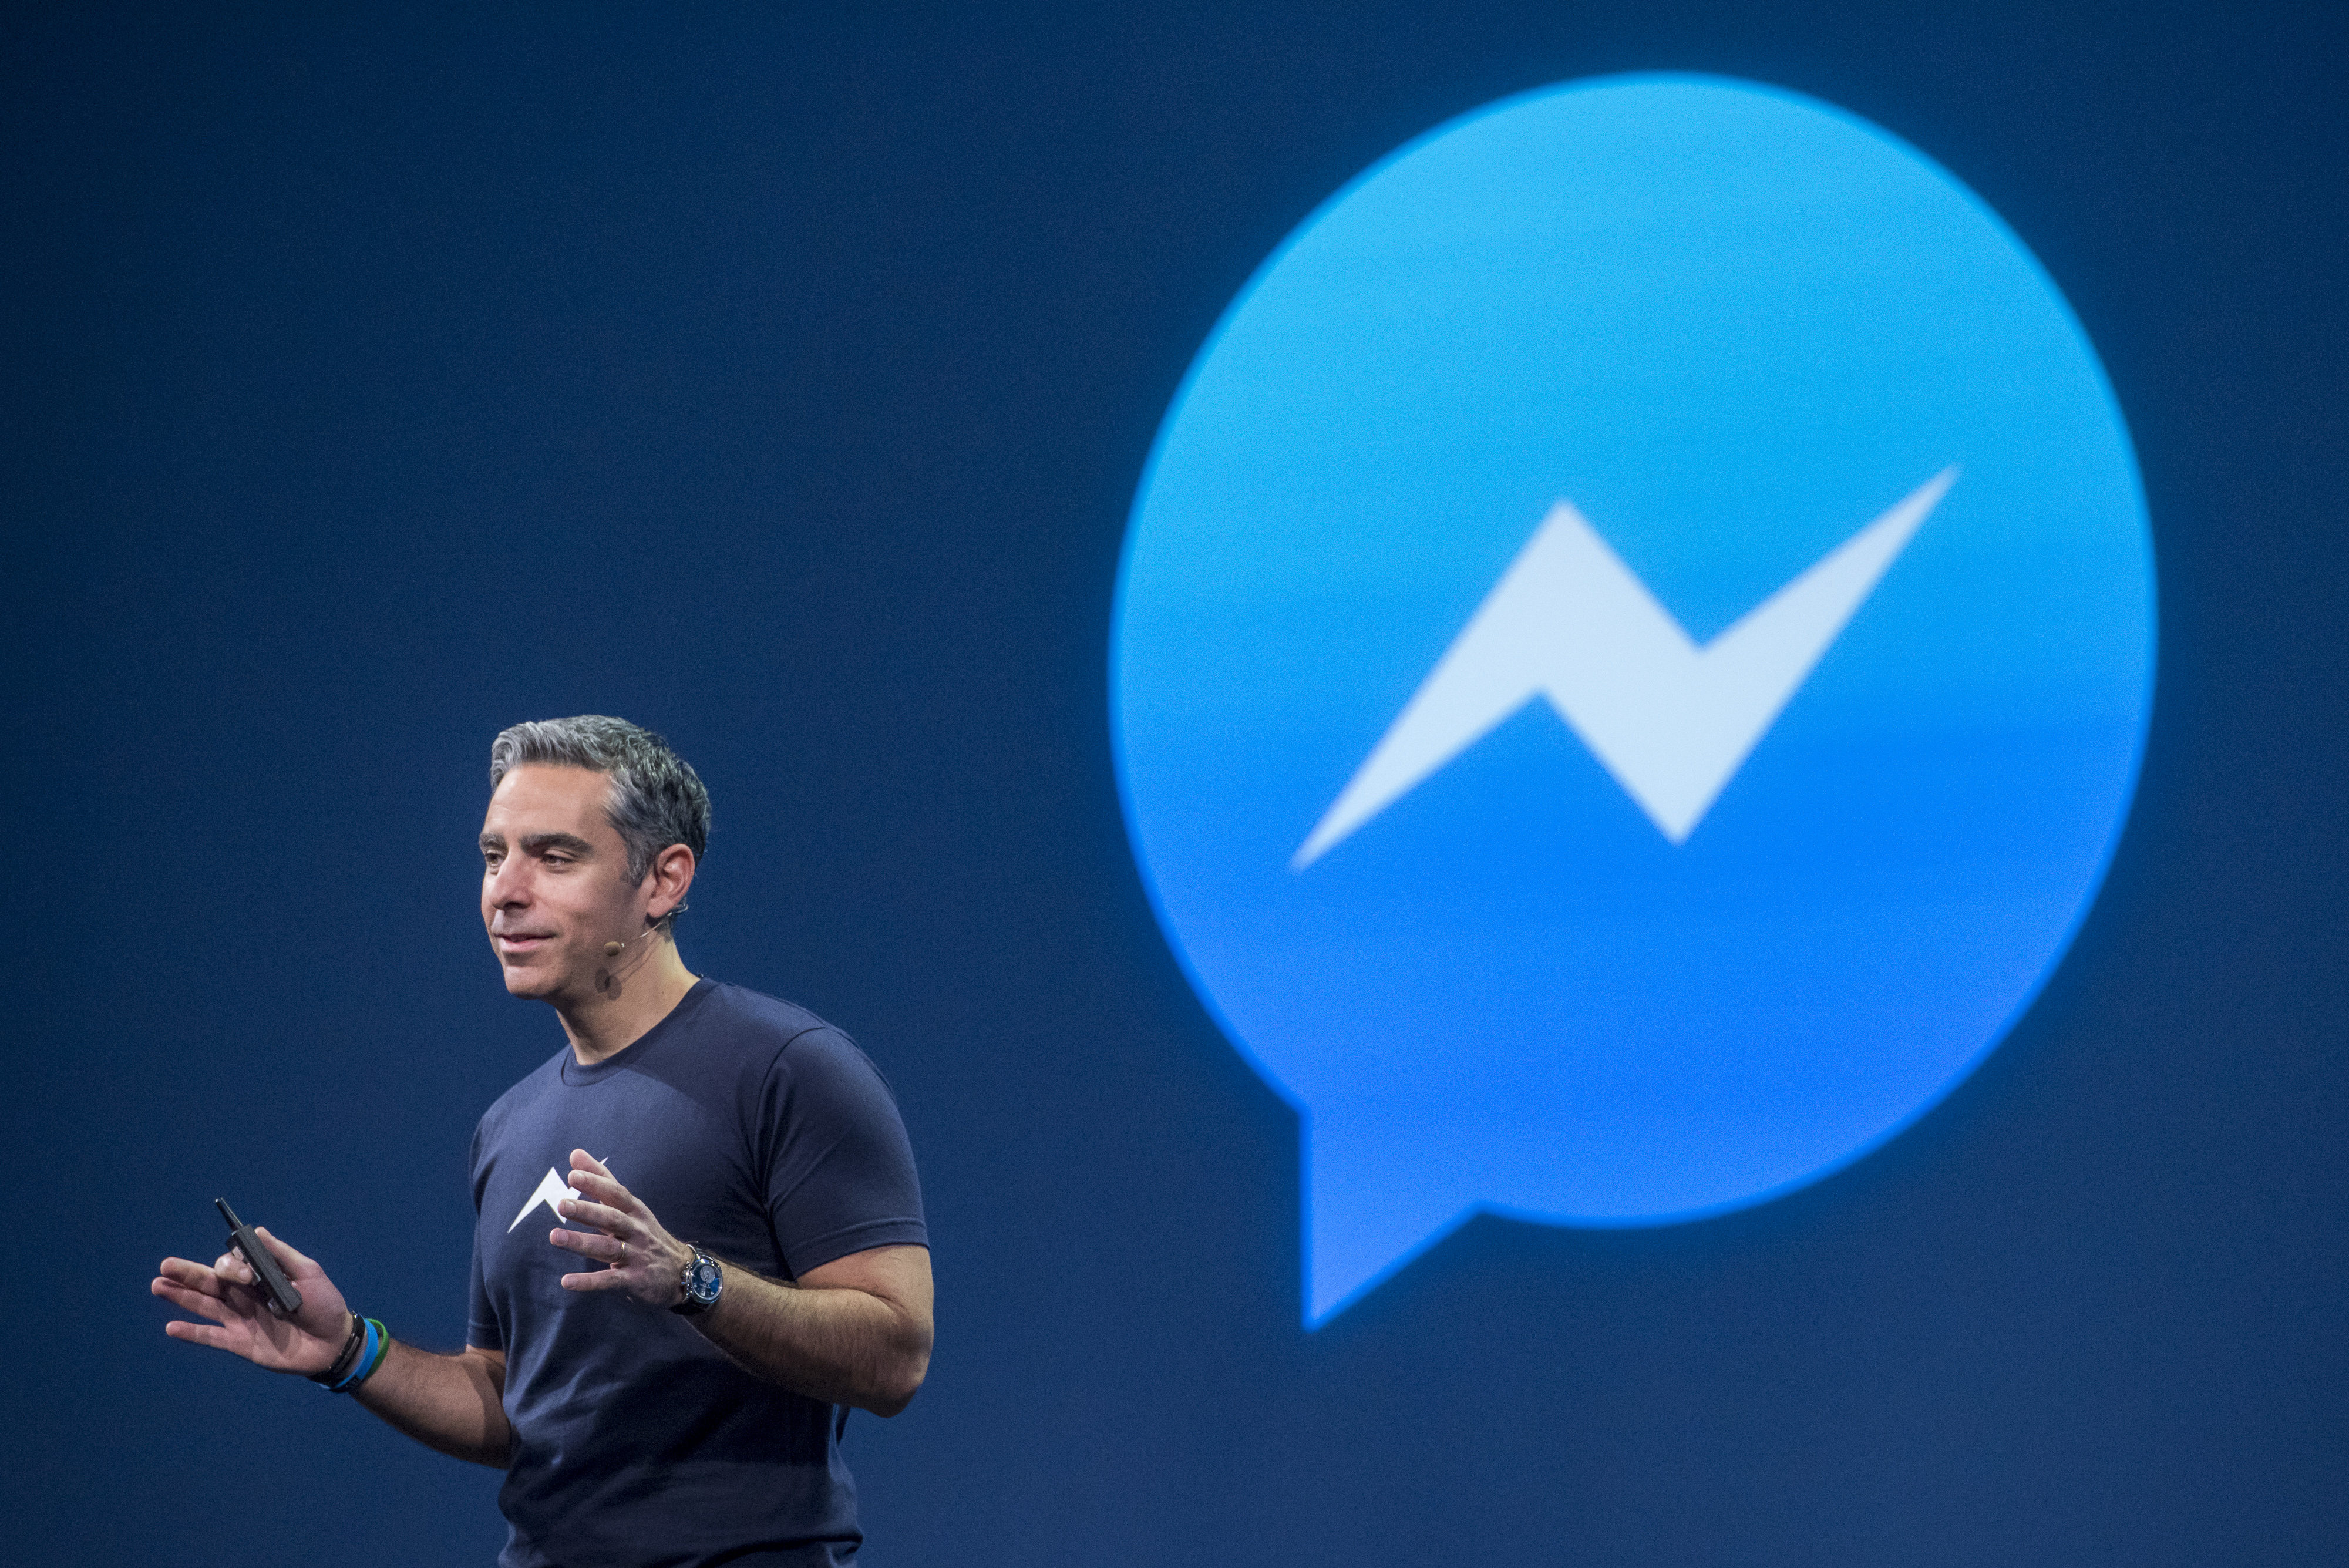 David Marcus, vice president of messaging products at Facebook Inc., speaks during the Facebook F8 Developers Conference in San Francisco, California, U.S., on Wednesday, March 25, 2015.